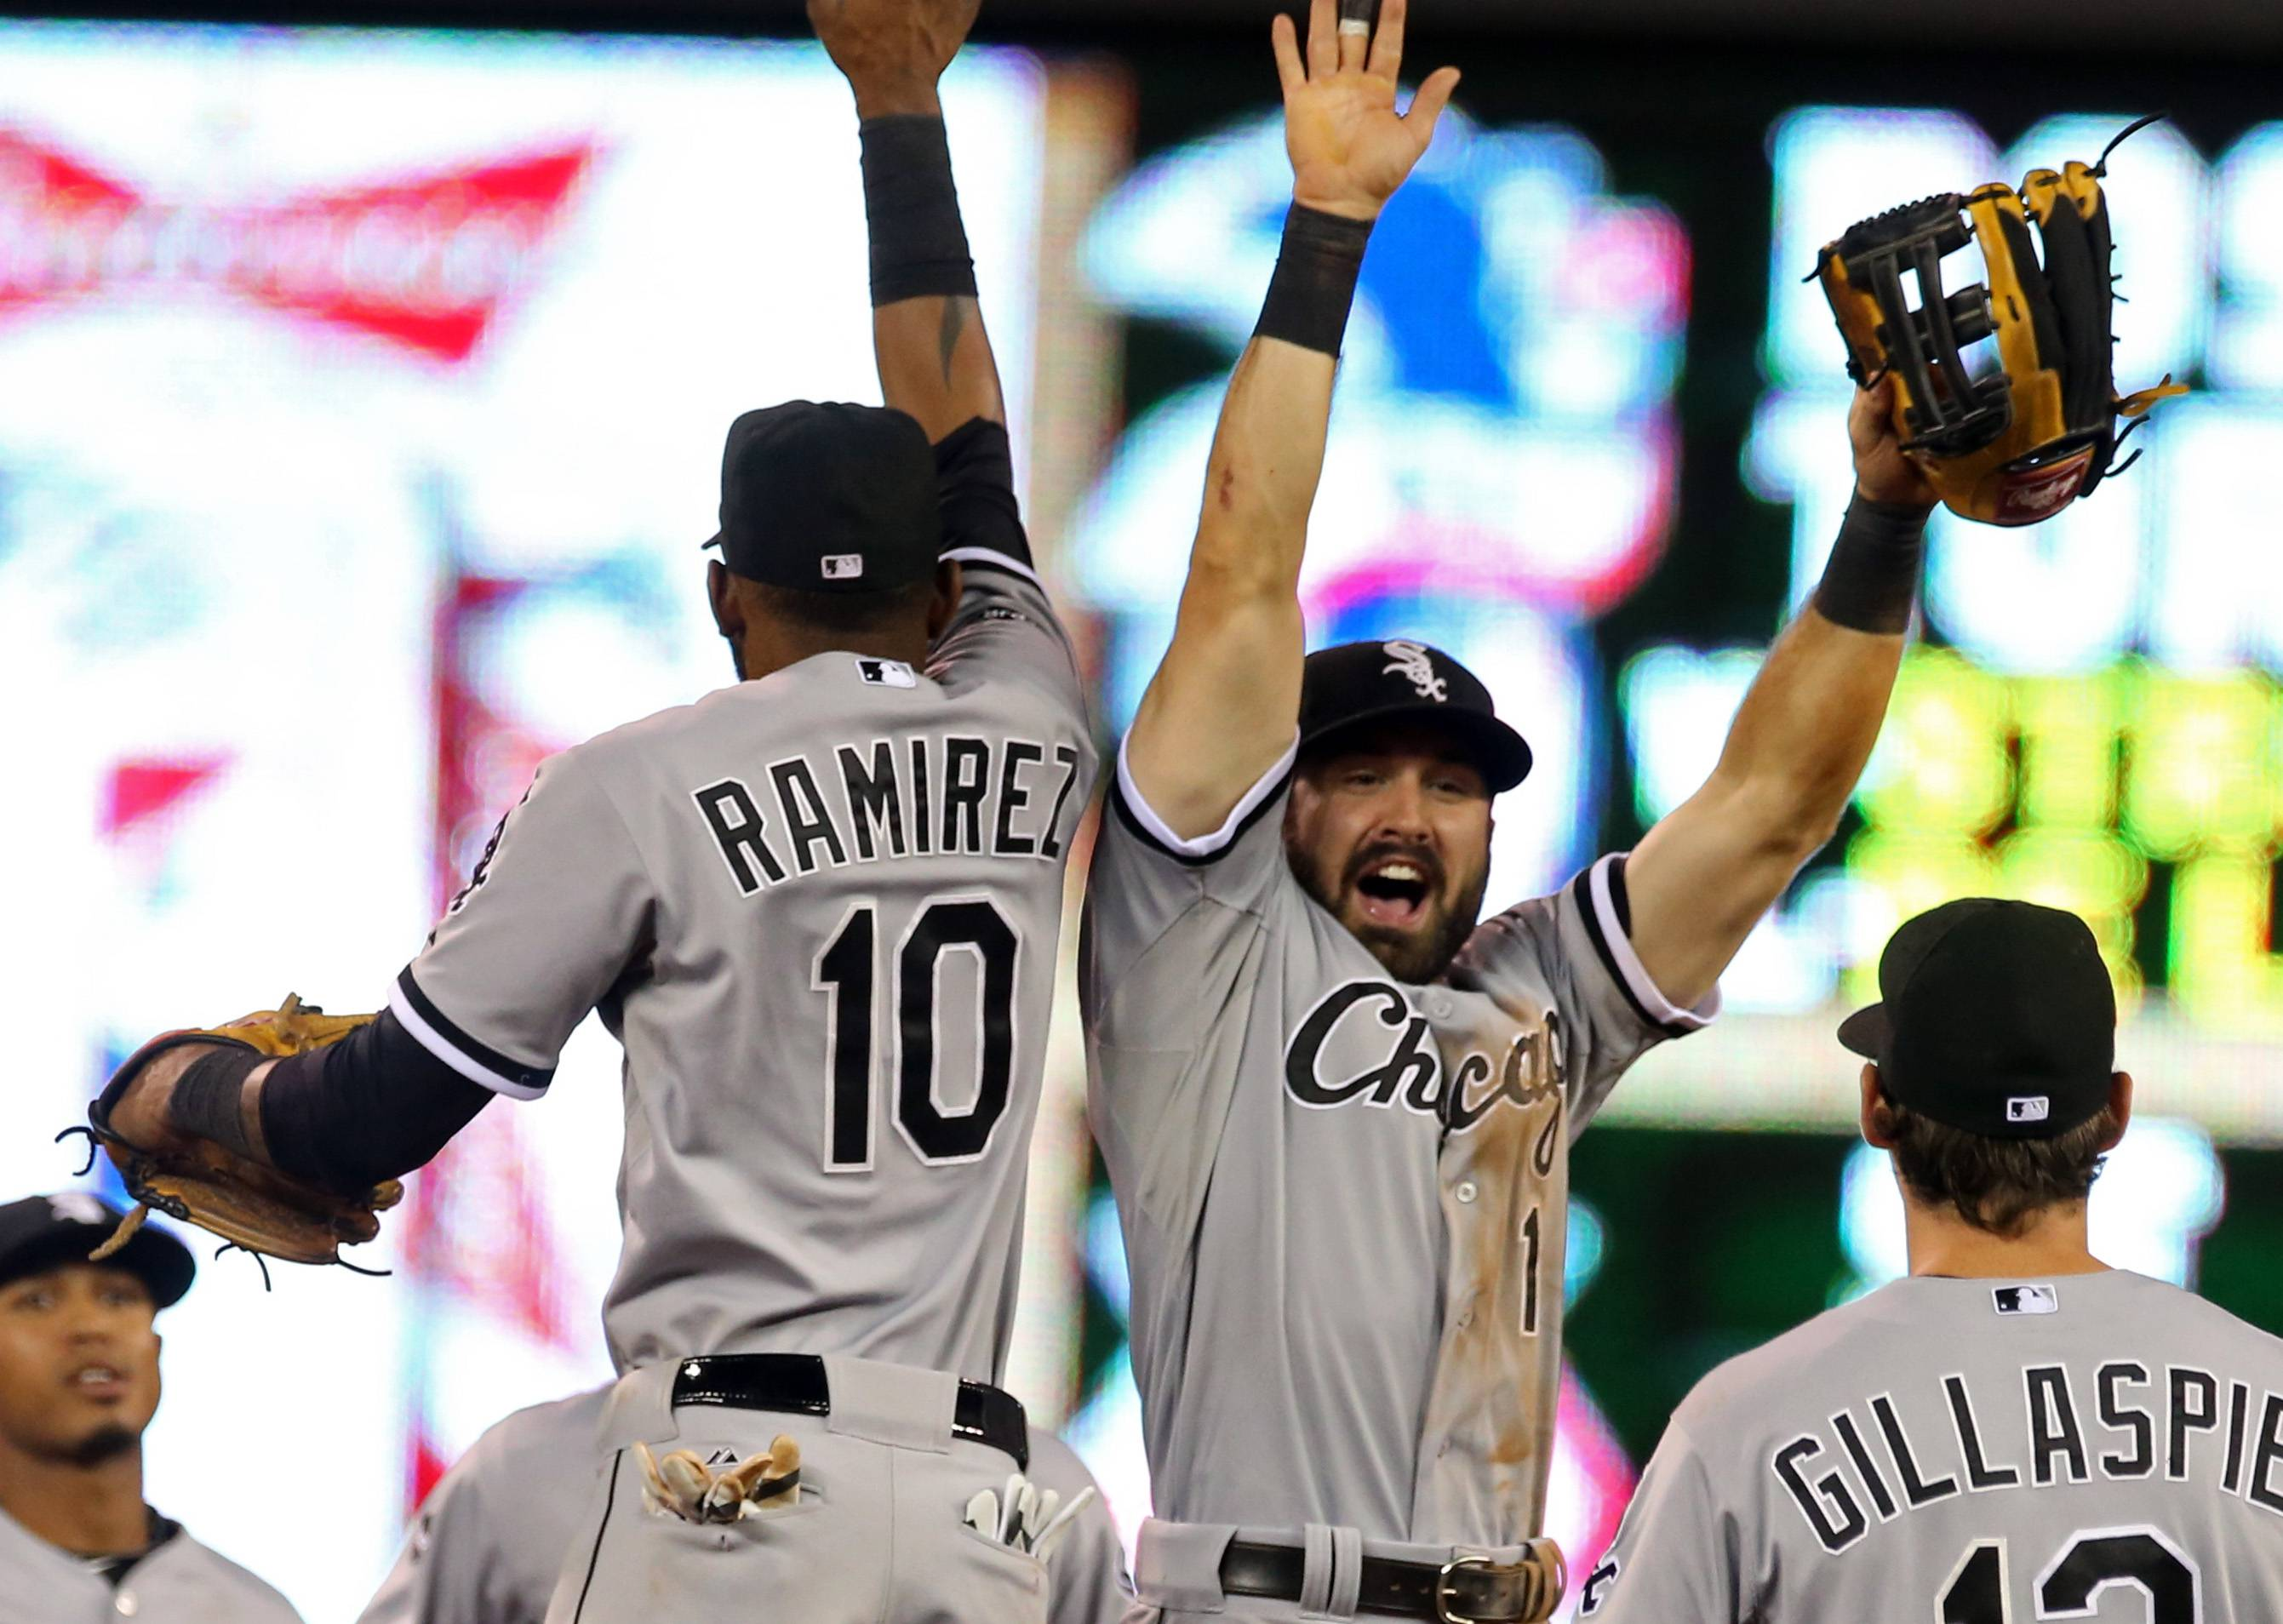 Chicago White Sox' Adam Eaton (1) and Alexei Ramirez celebrate after they defeated the Minnesota Twins 5-2 in a baseball game on Thursday, July 24, 2014, in Minneapolis. (AP Photo/Jim Mone)